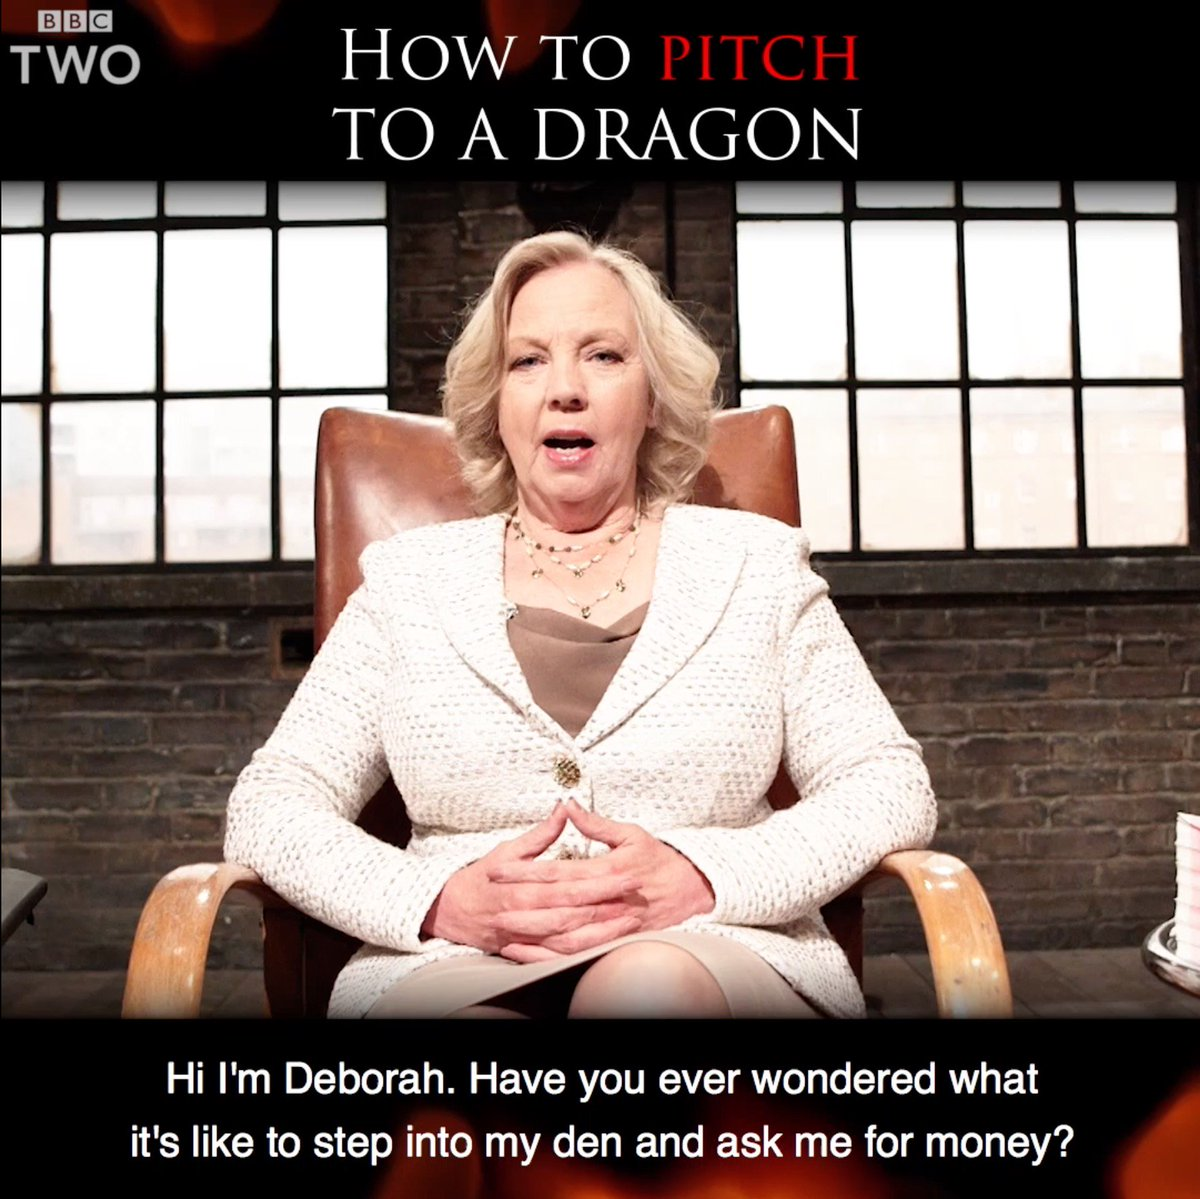 Ever wondered what it's like asking @DeborahMeaden for money? Step int...